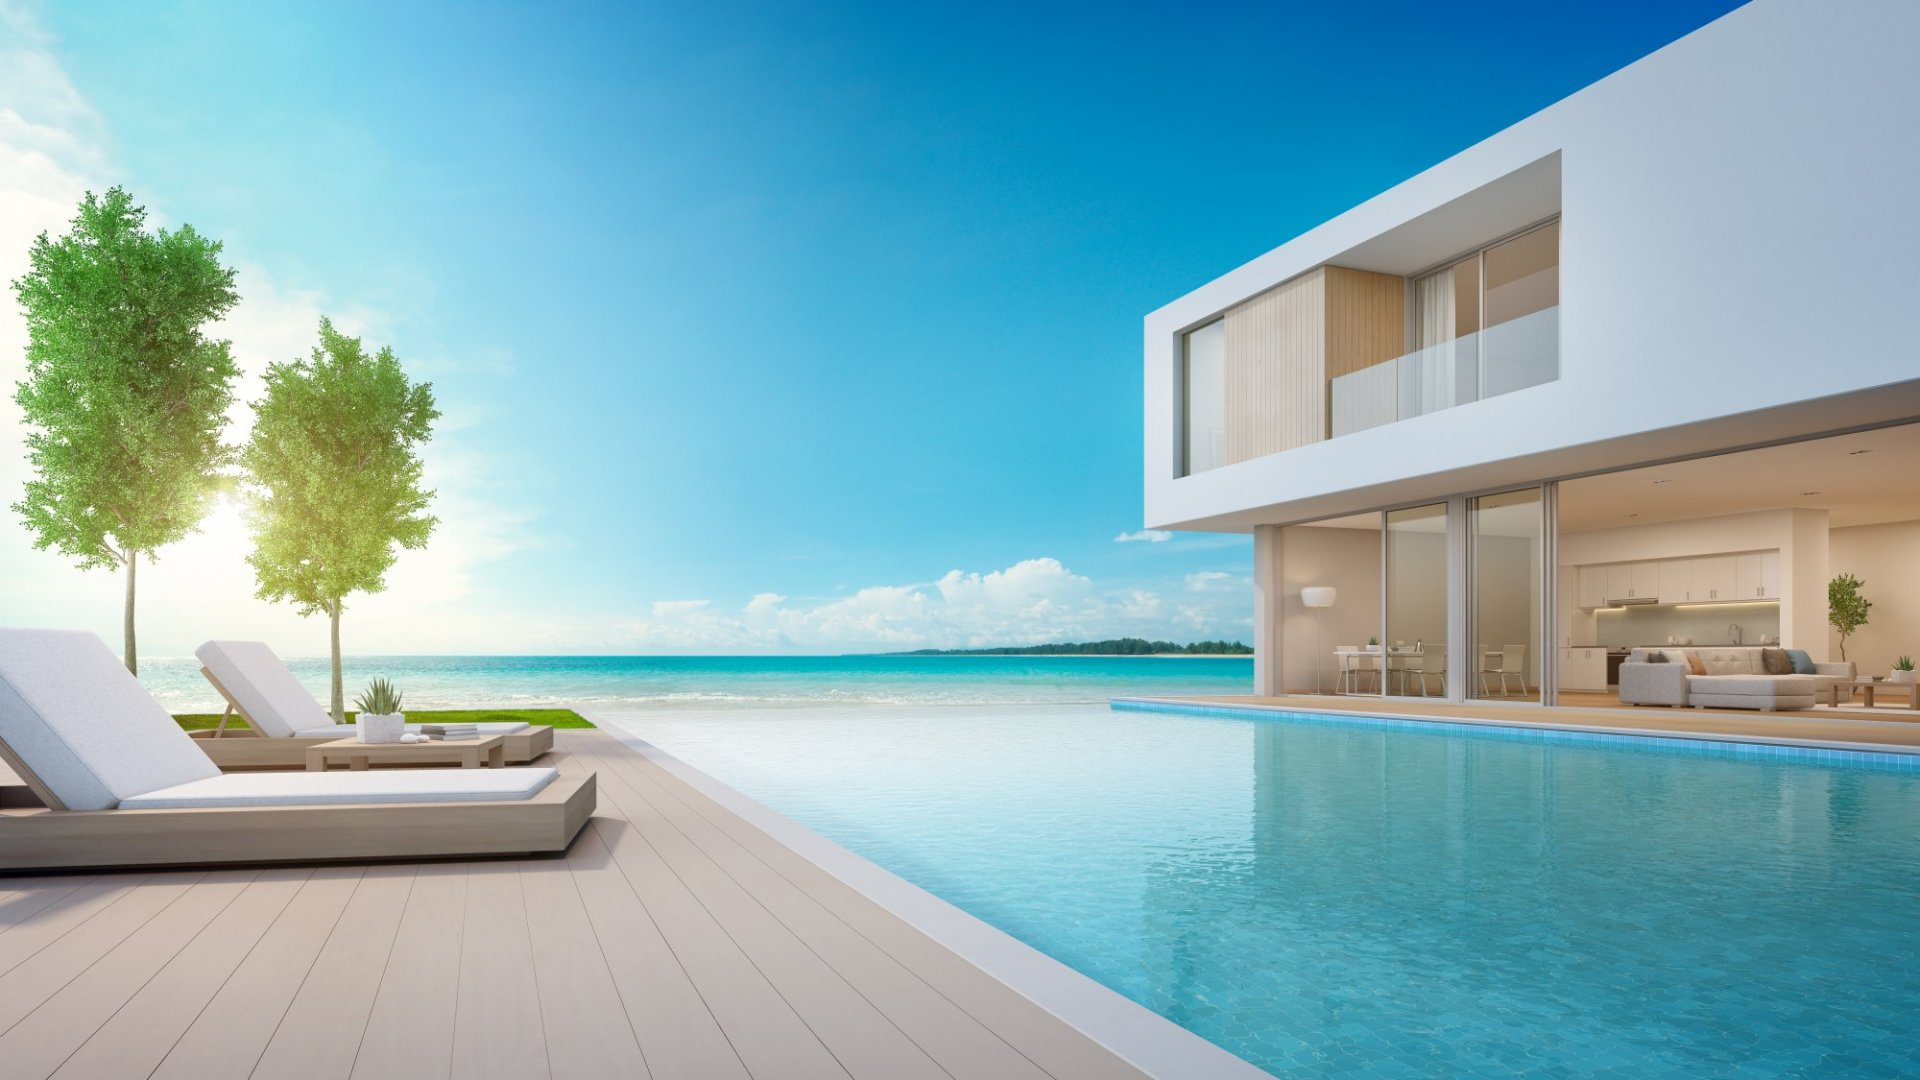 Why an Airbnb Listing Benefits Your Home or Vacation Rental Property